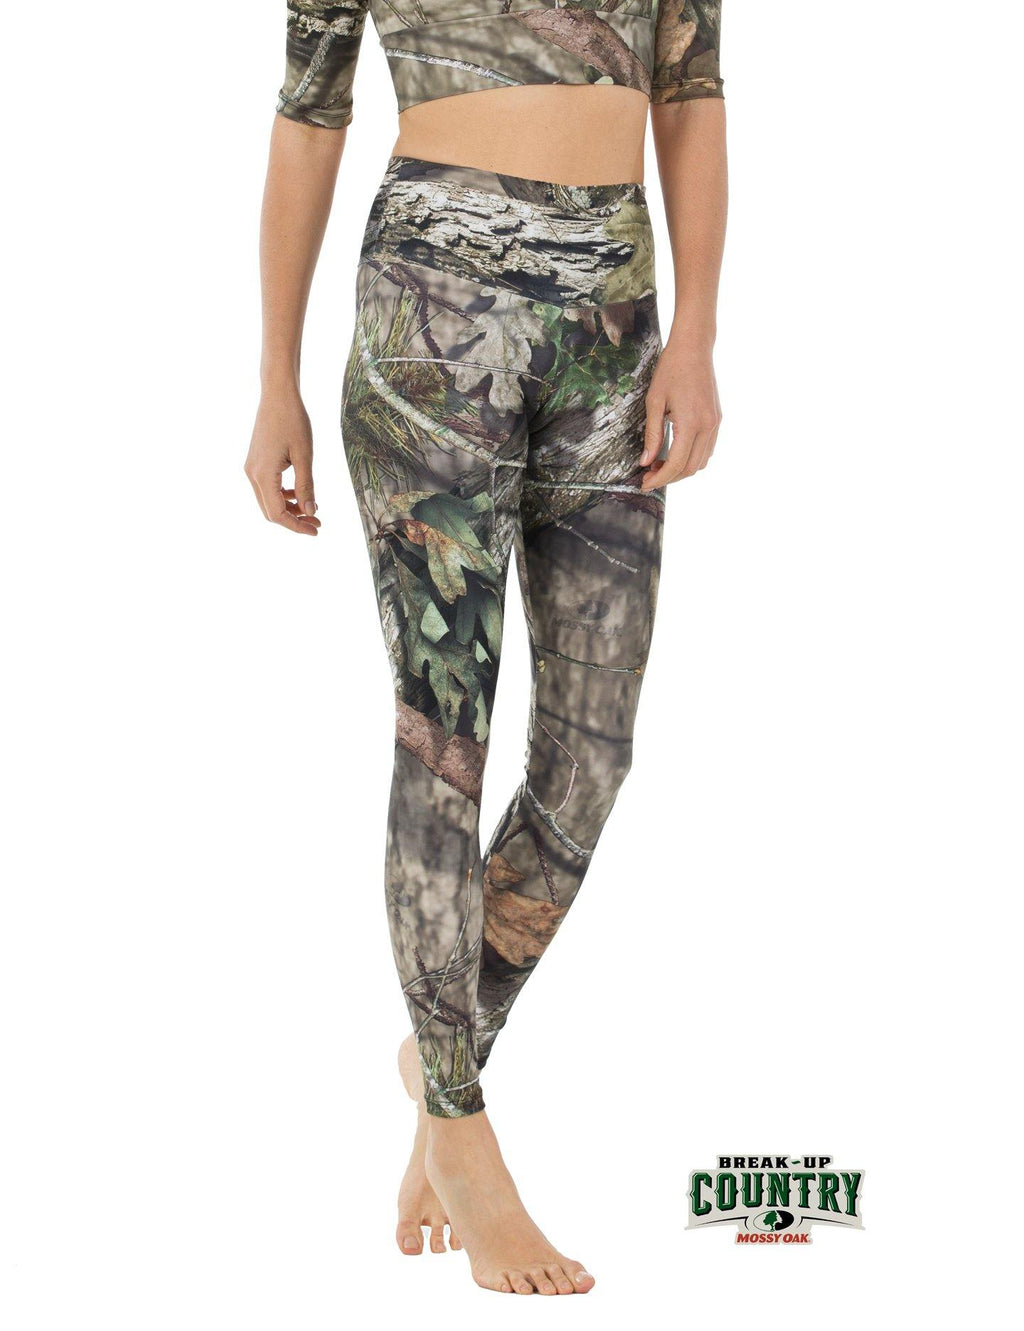 Apsara Leggings High Waist Full Length, Mossy Oak Break-Up Country